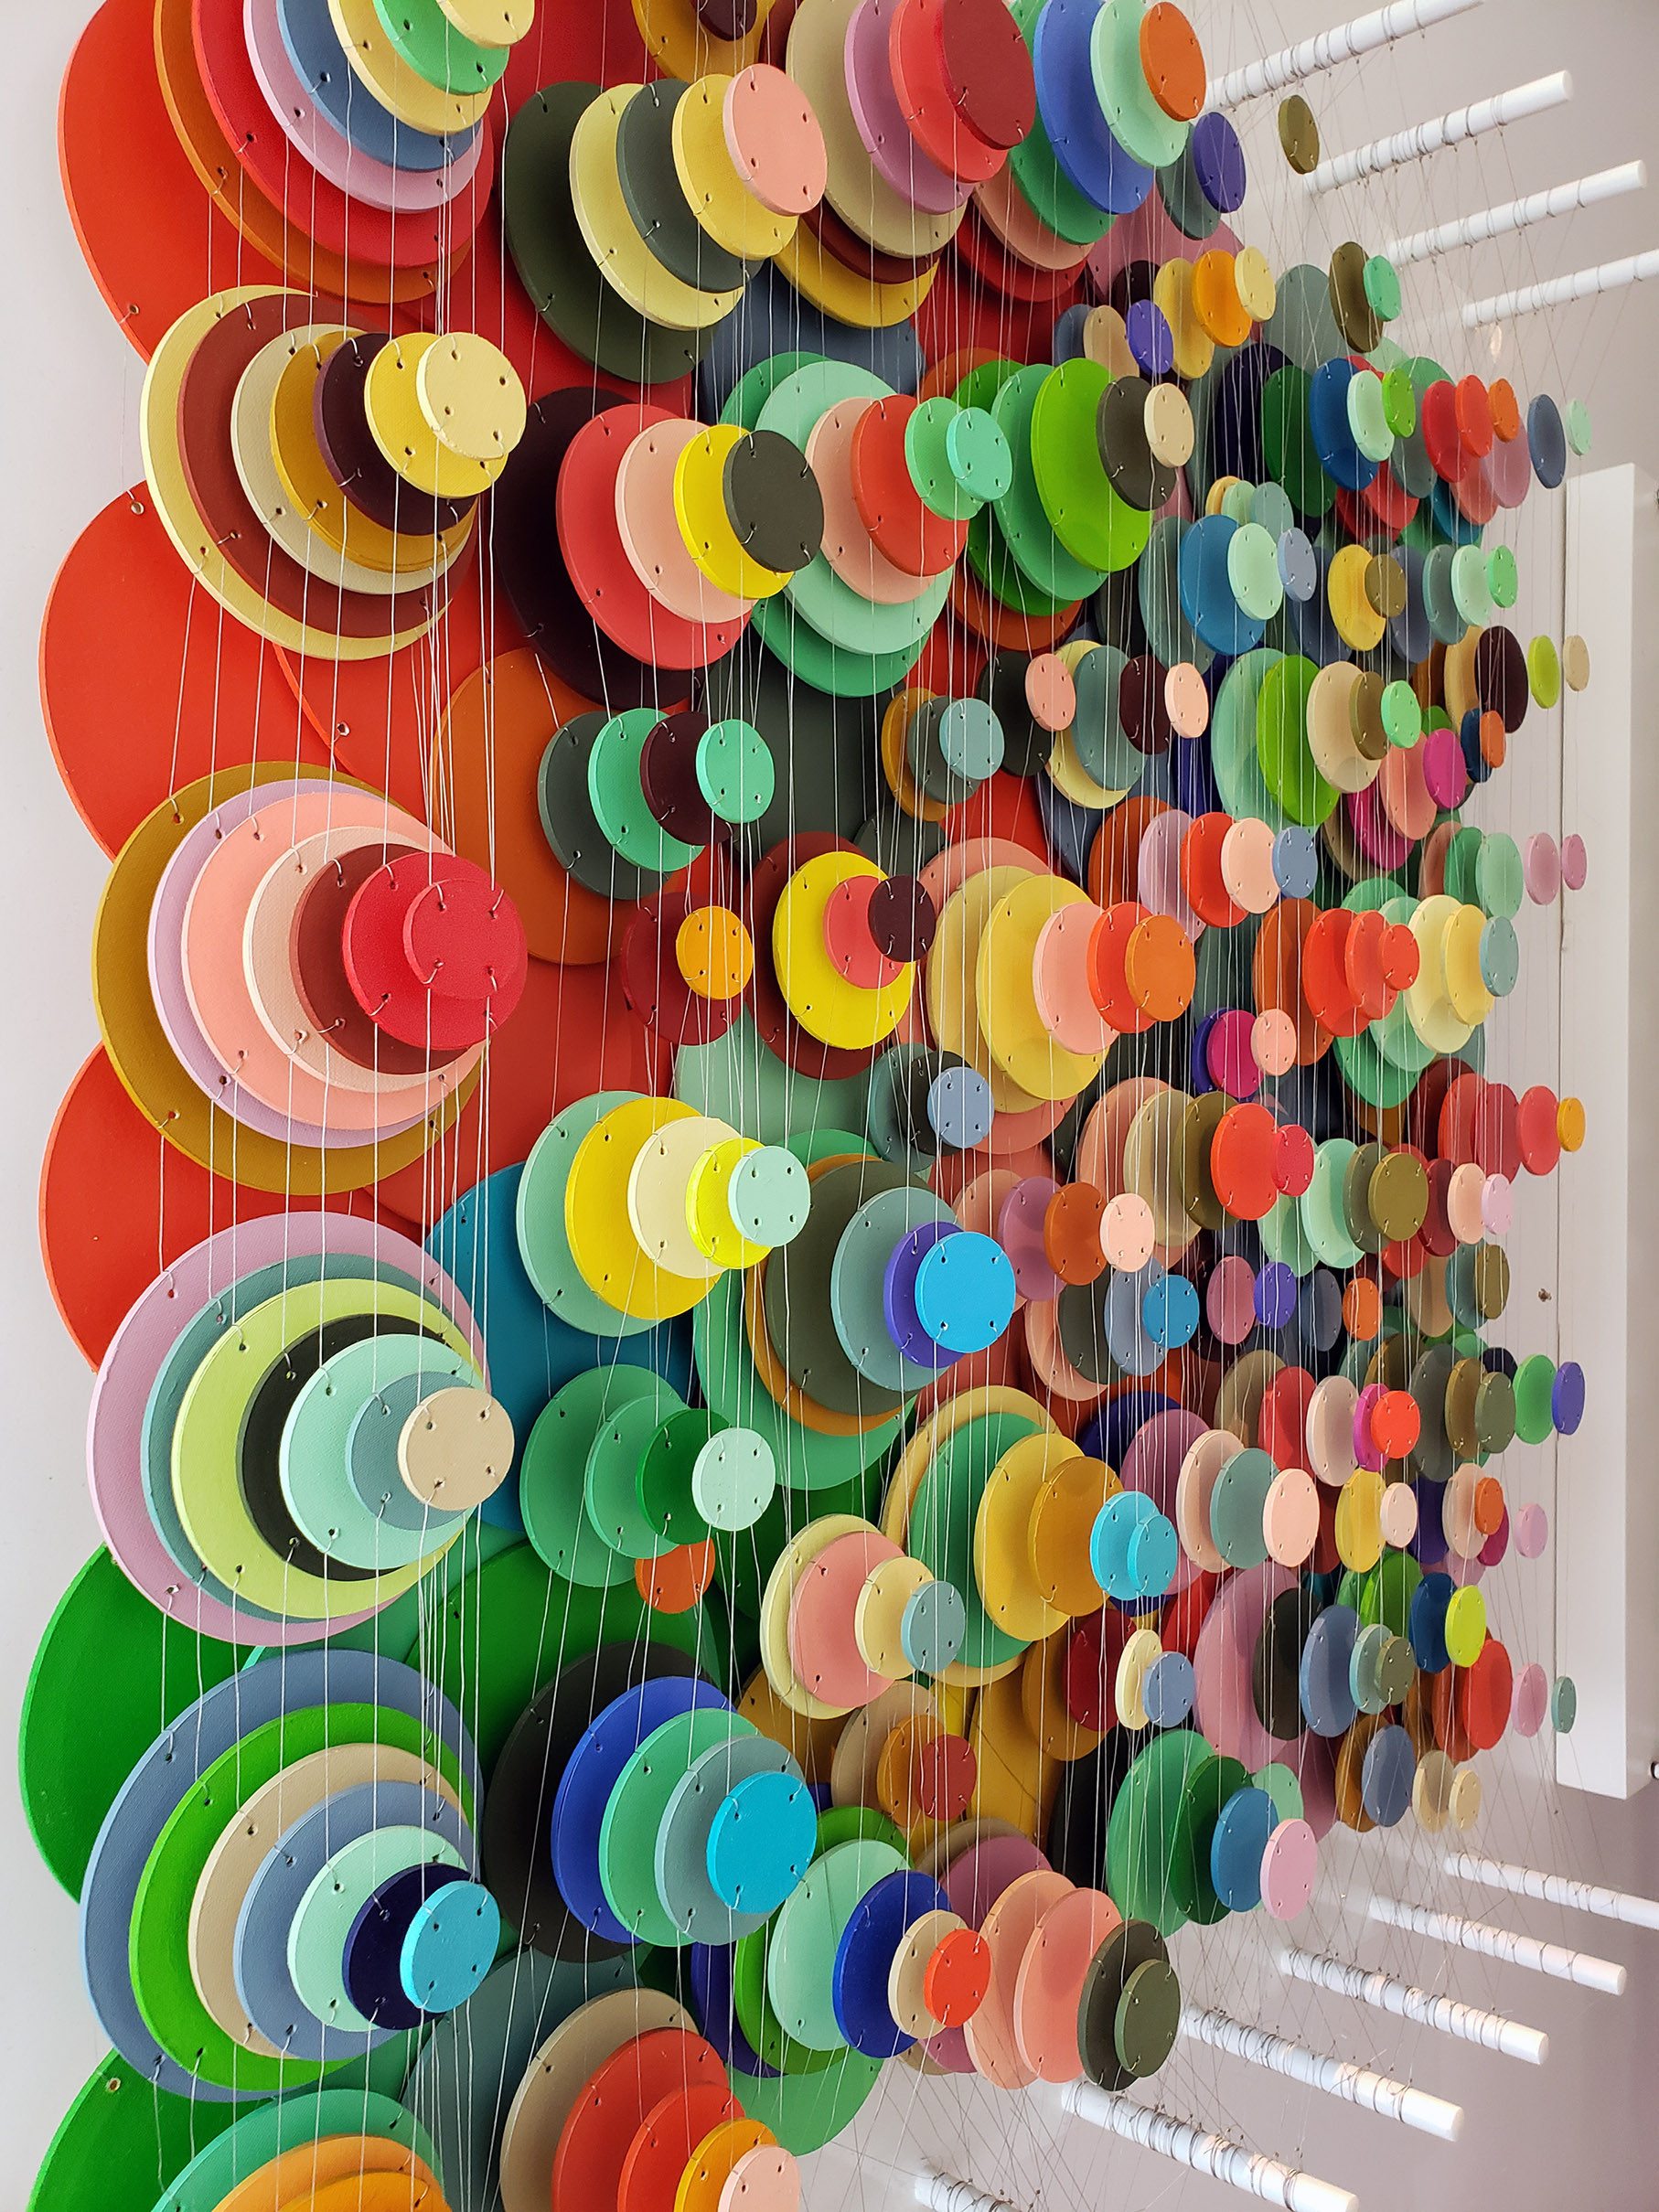 Cecilia Glazman Multicolor popps 2018 Papel y madera pintados a mano e hilos (Hand painted paper and wood, thread) 100 x 100 cm.